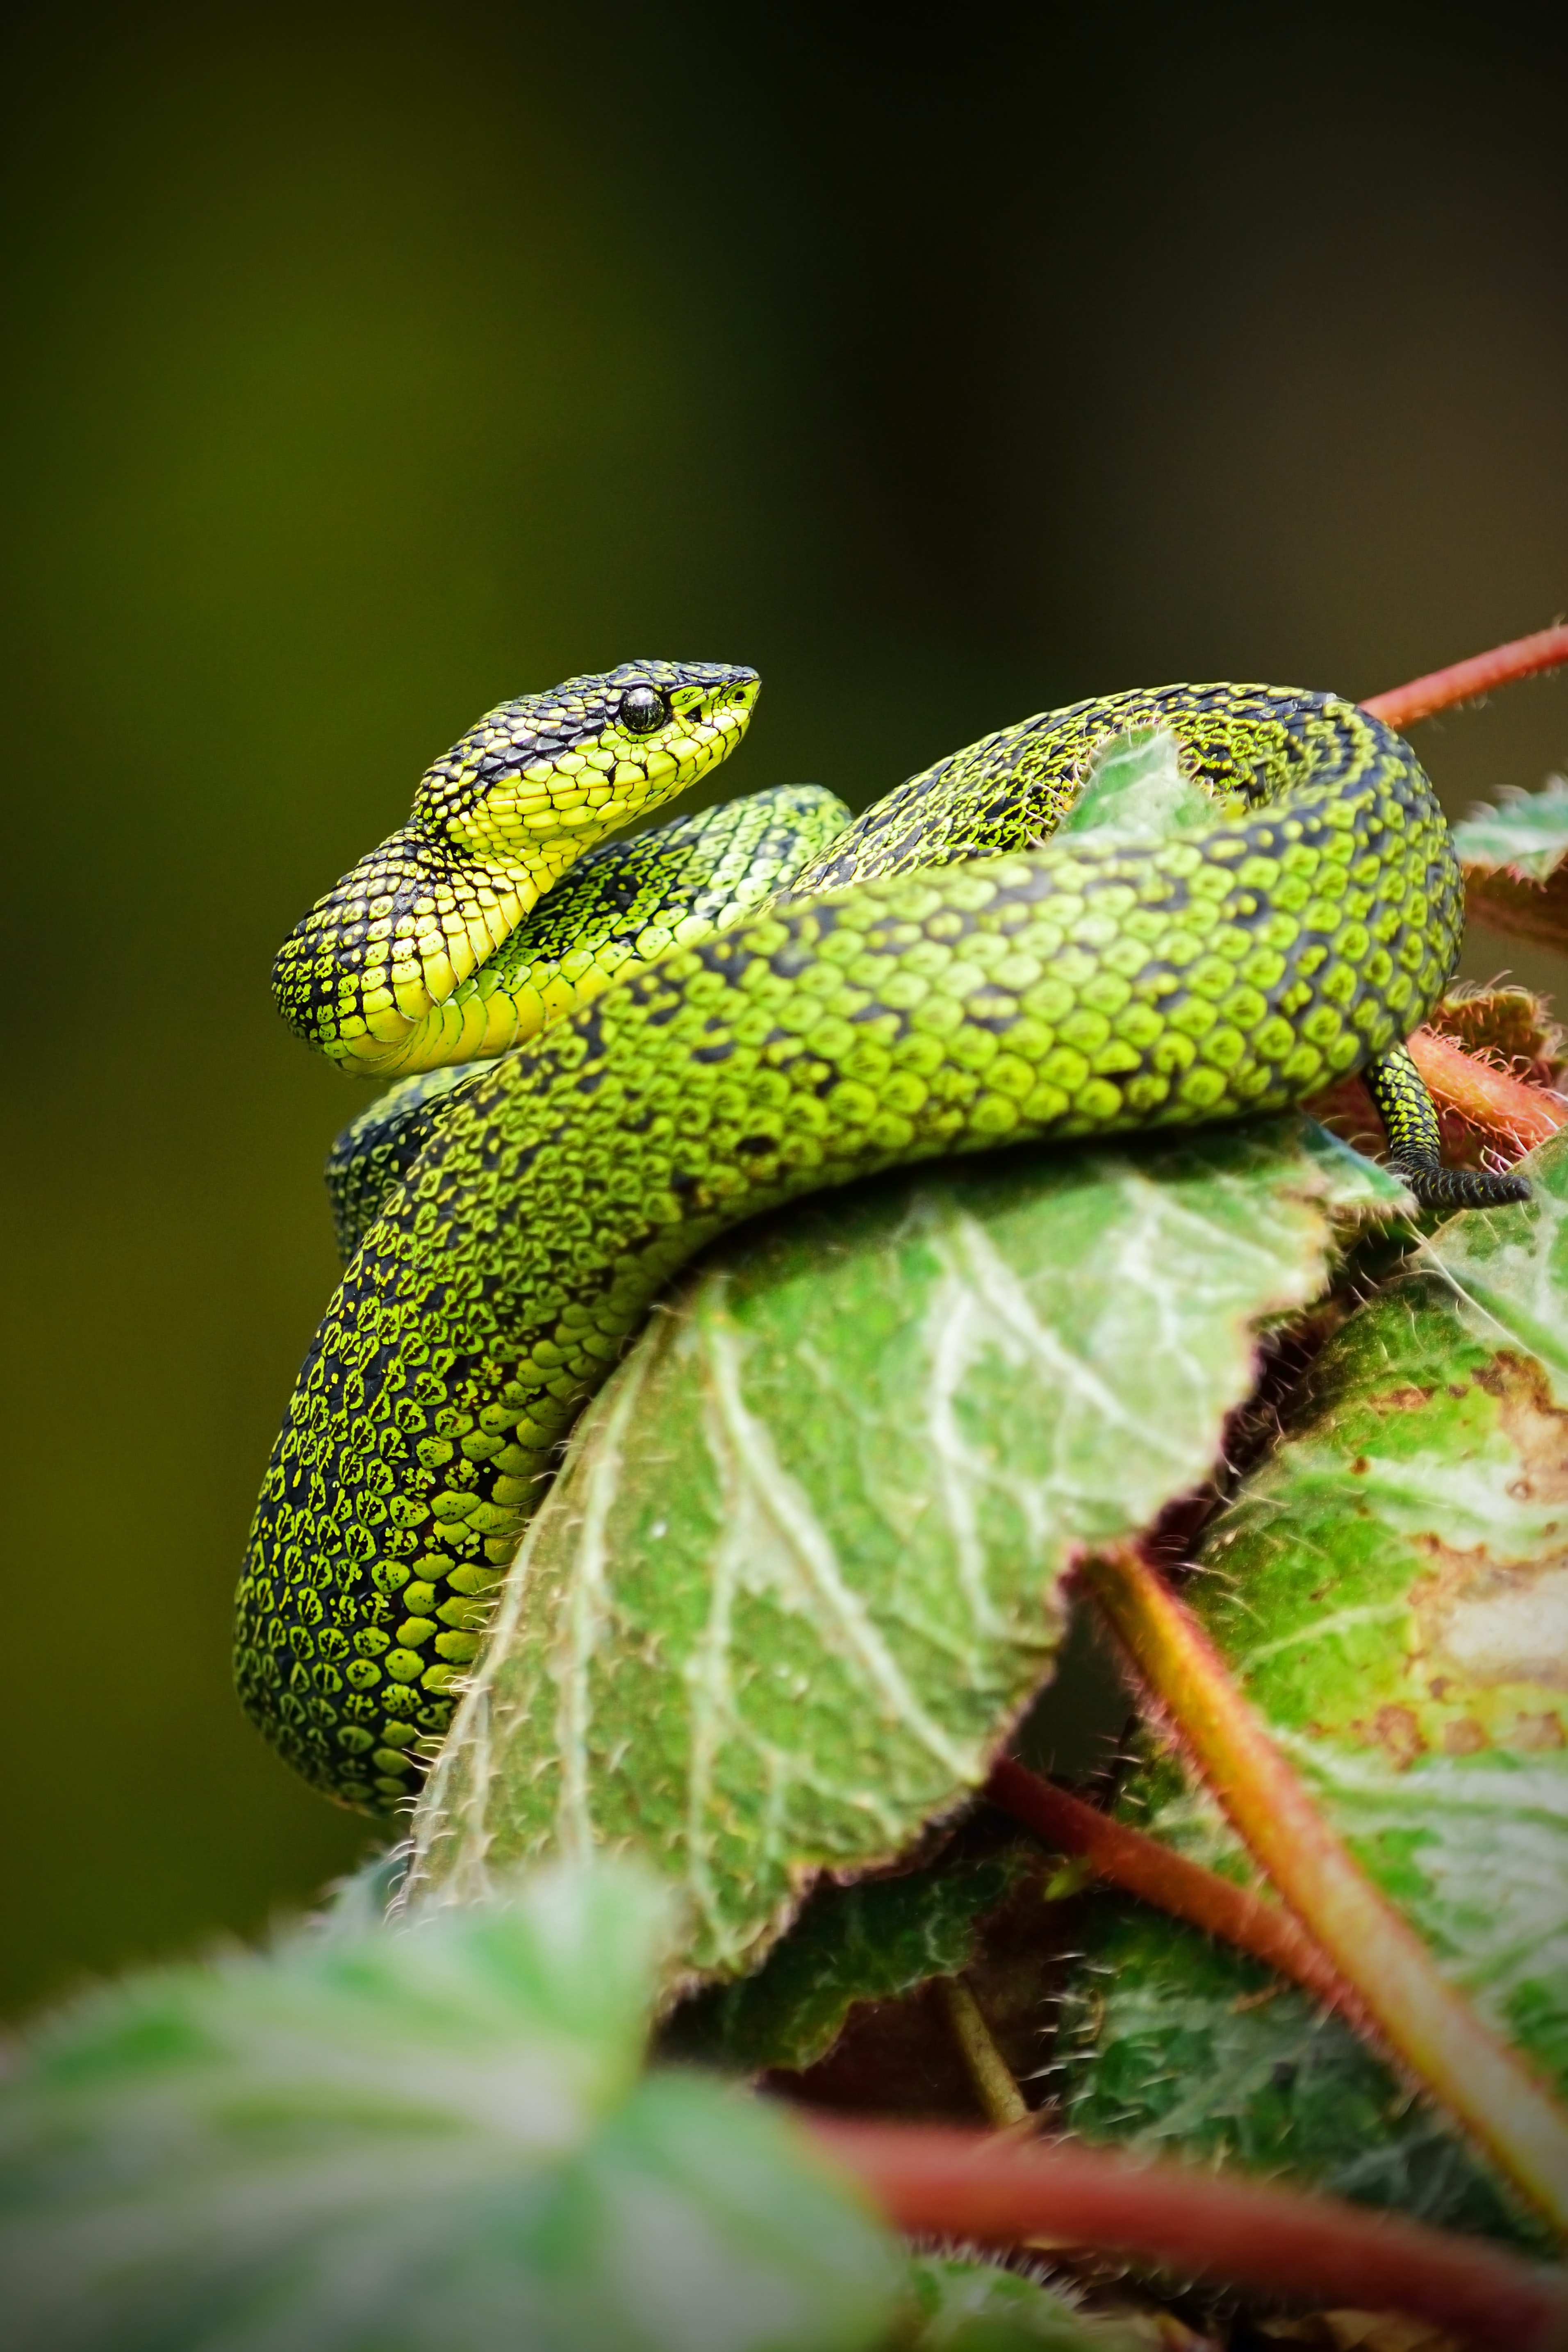 A snake with green and black scales coiled around a leaf